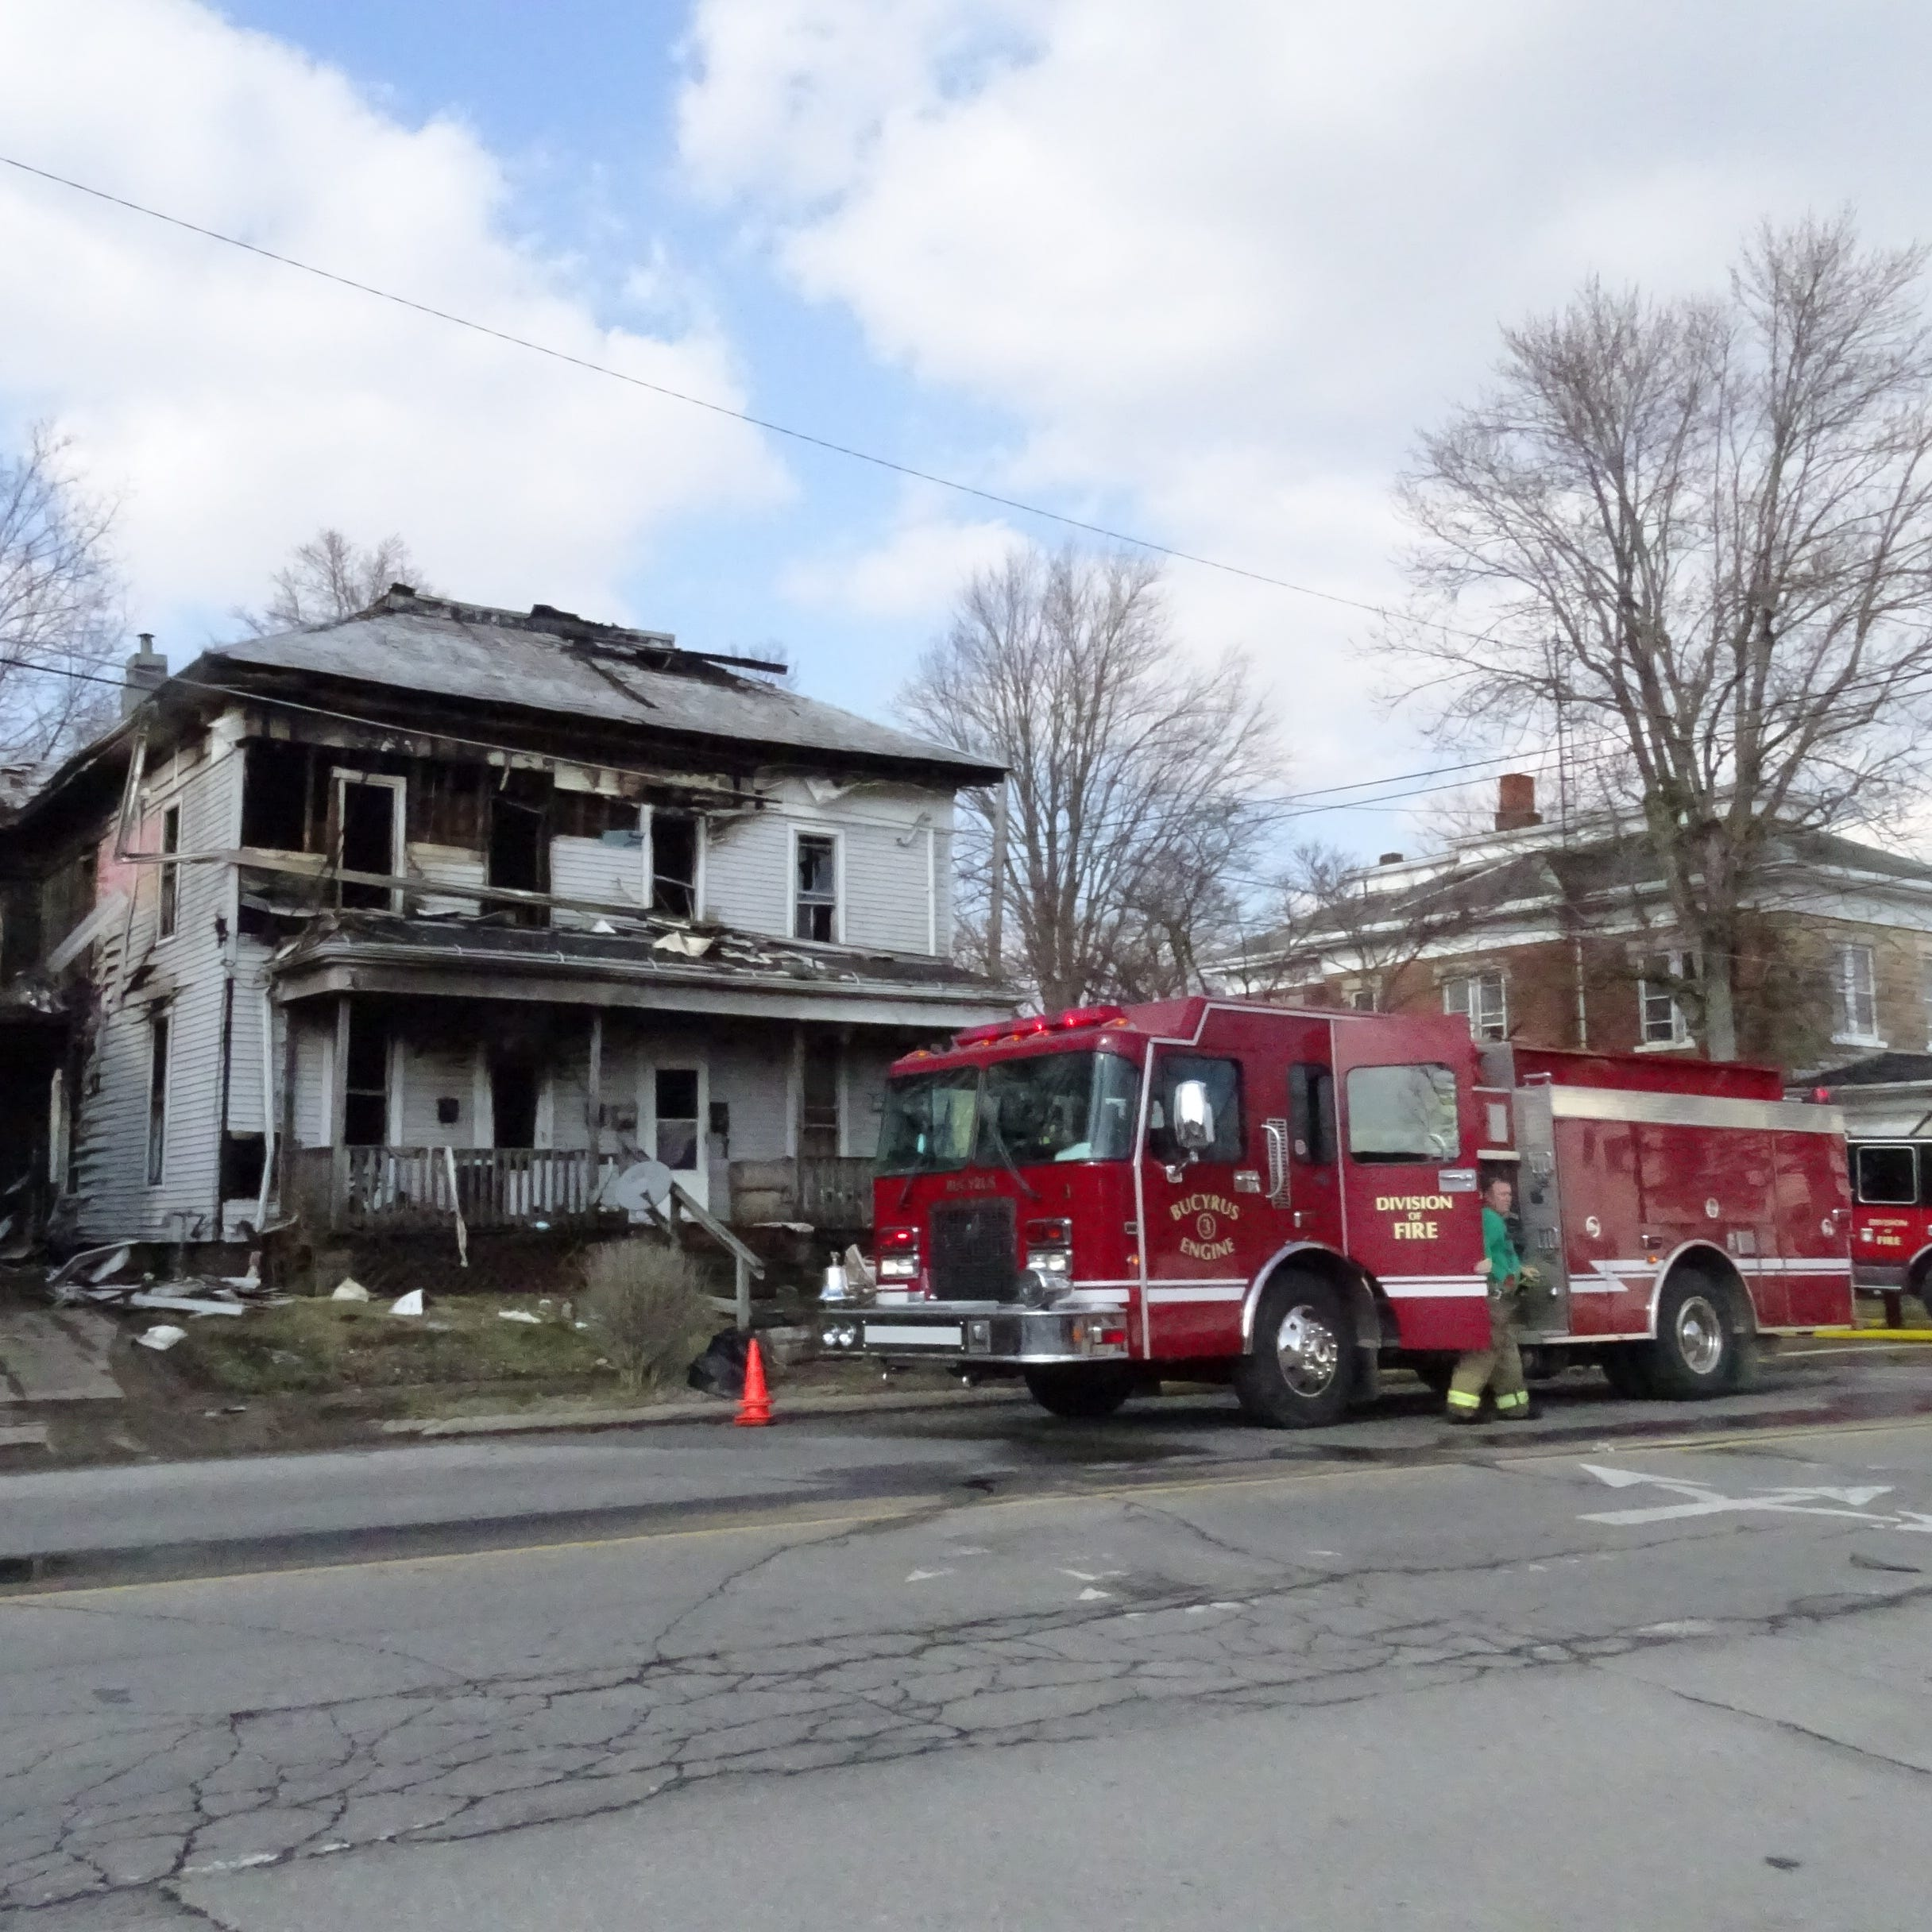 Investigation into West Mansfield Street fire on hold, prosecutor says